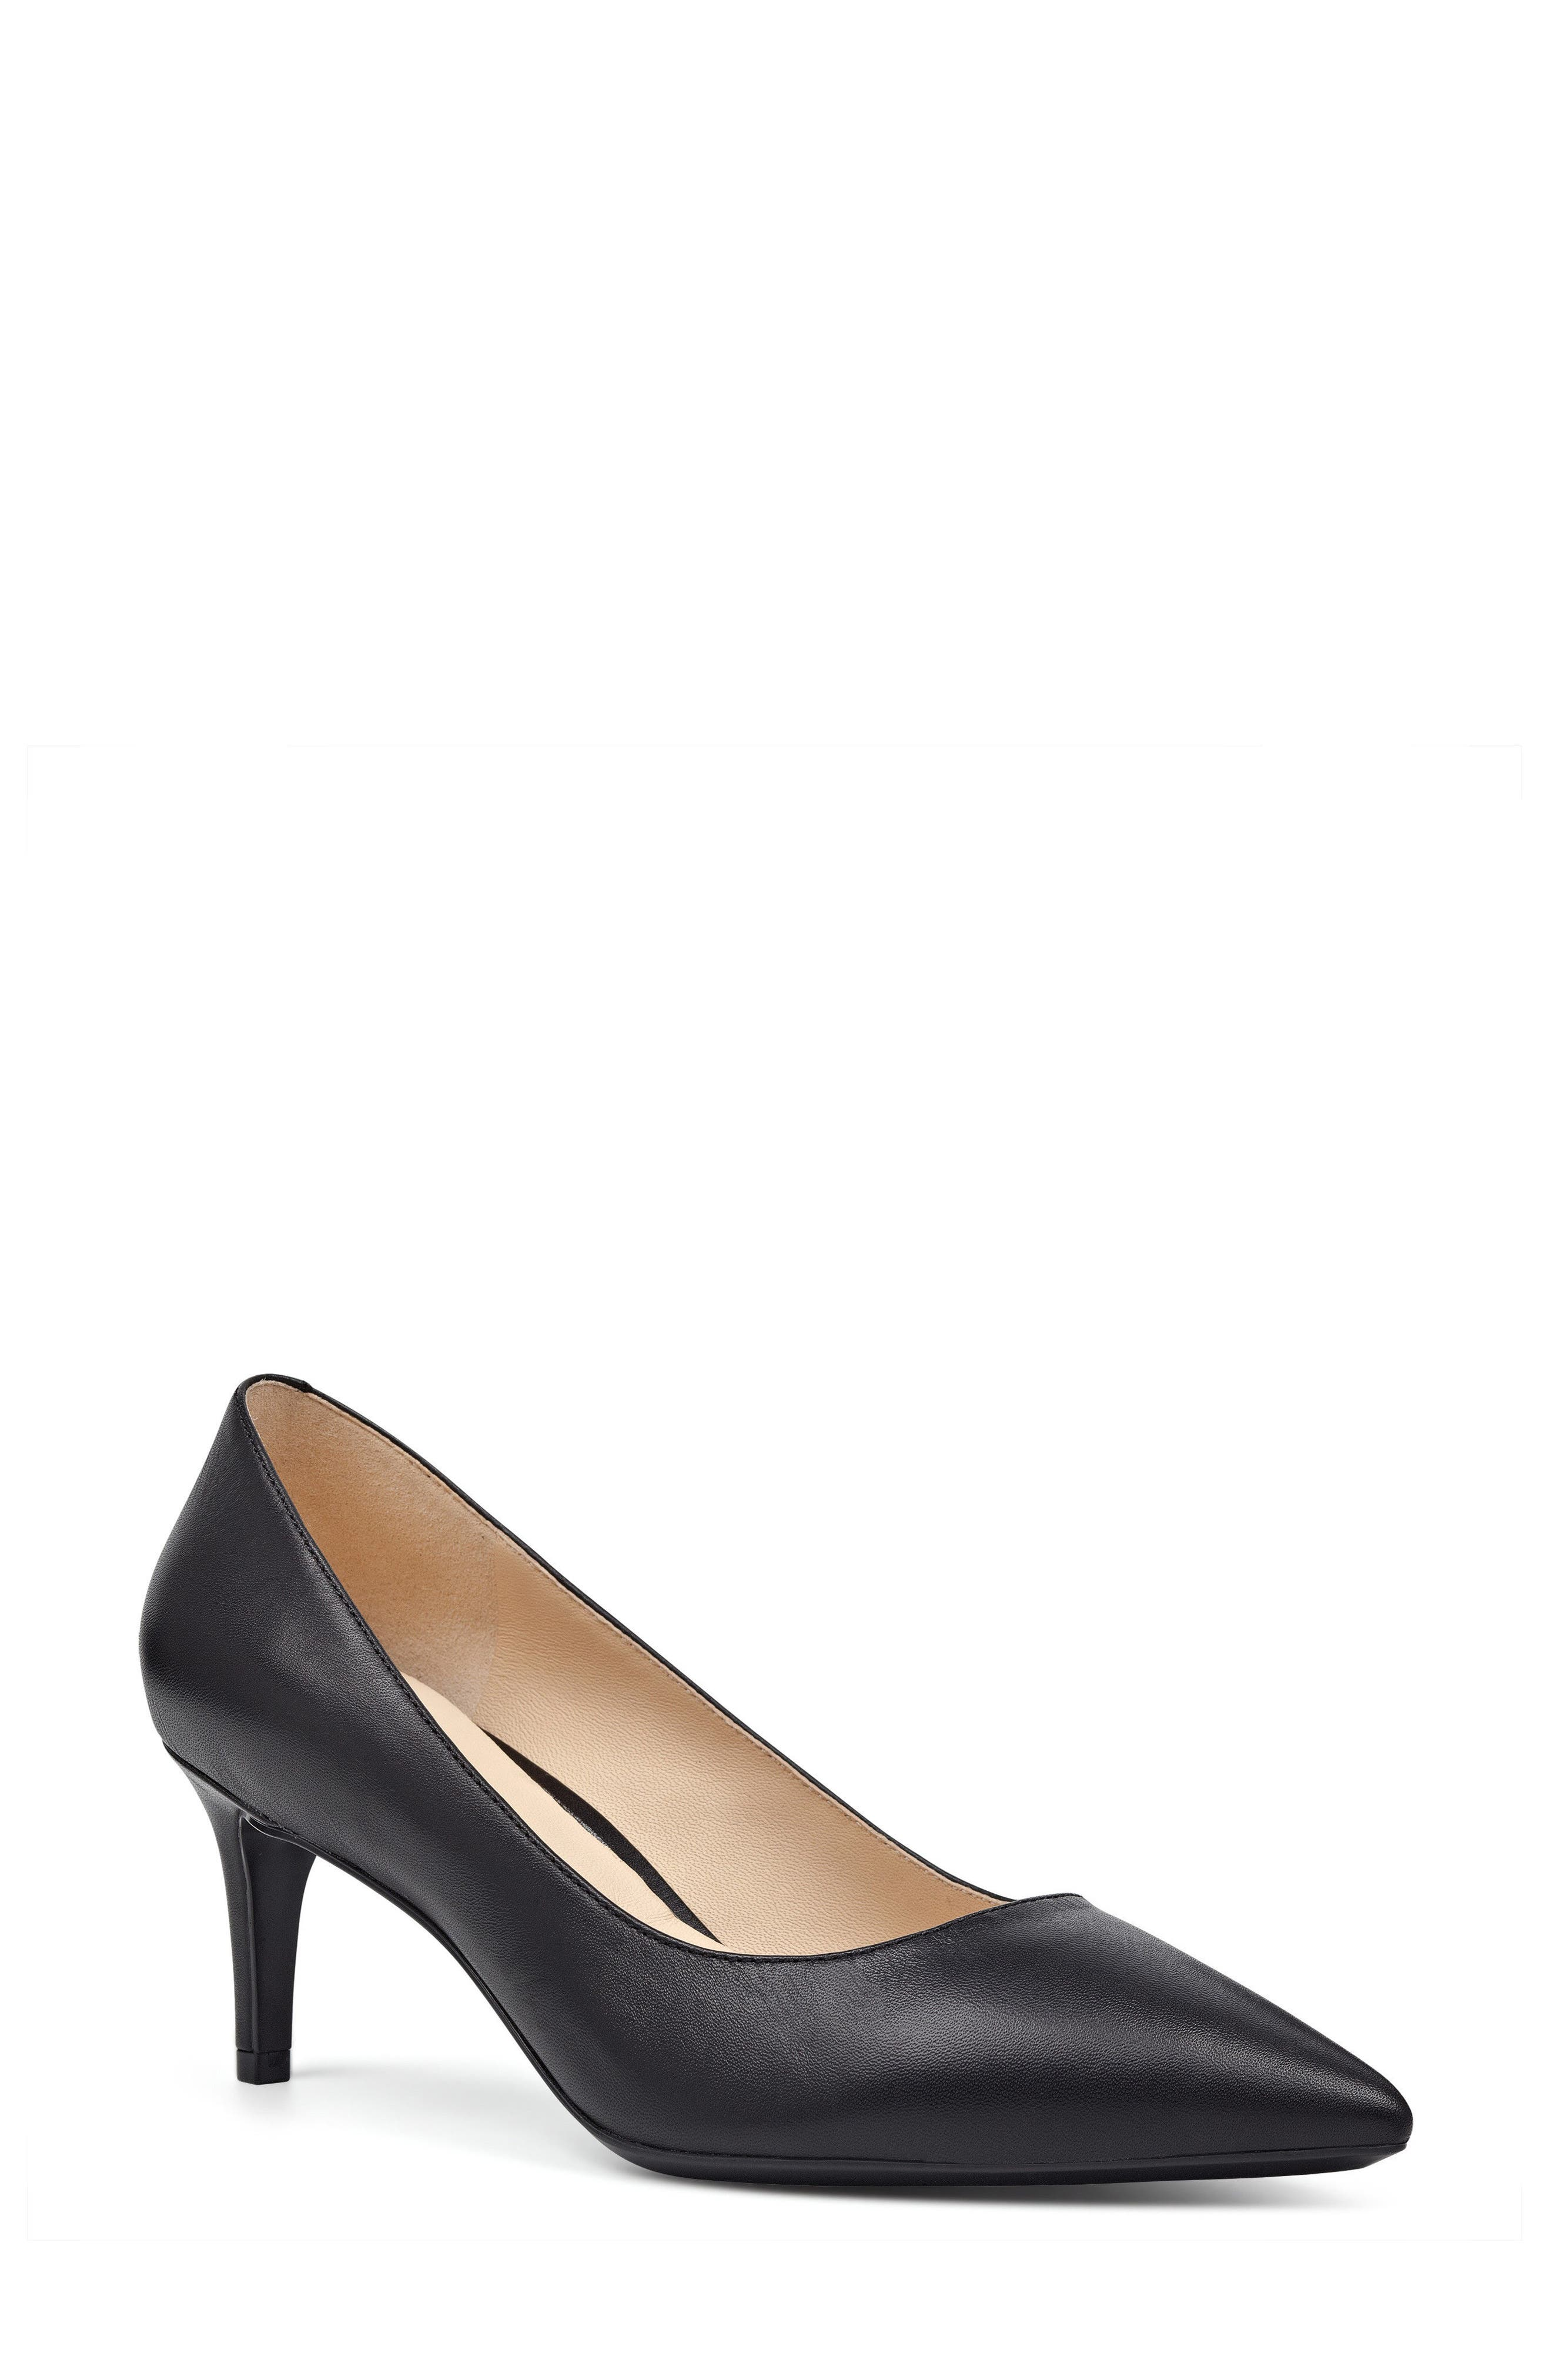 Soho Pointy Toe Pump,                             Main thumbnail 6, color,